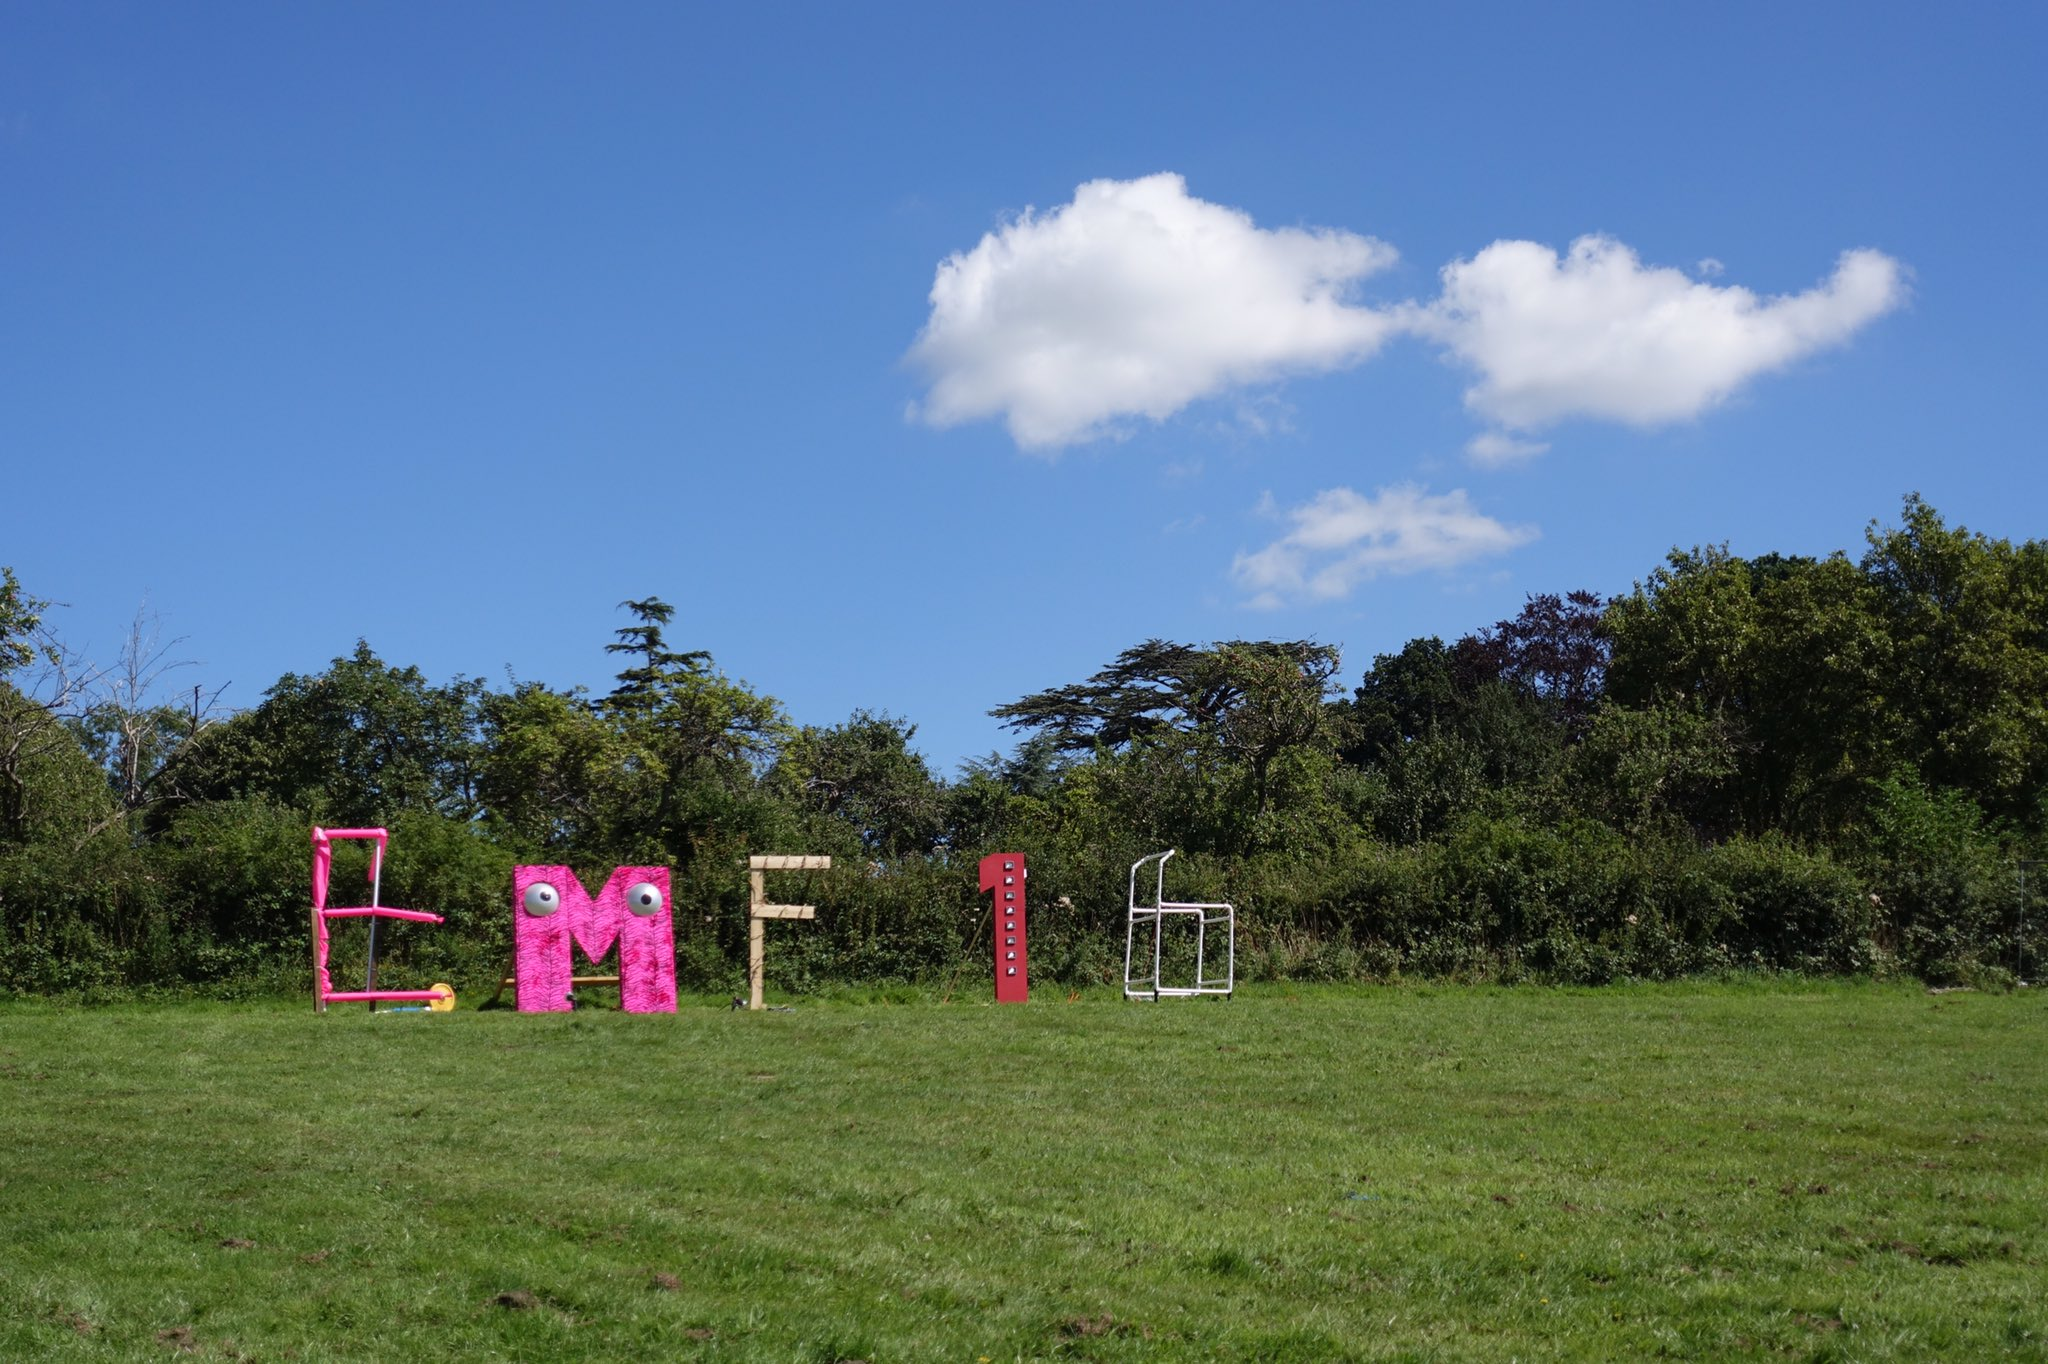 A postcard from #emfcamp https://t.co/kkvUXLn24P